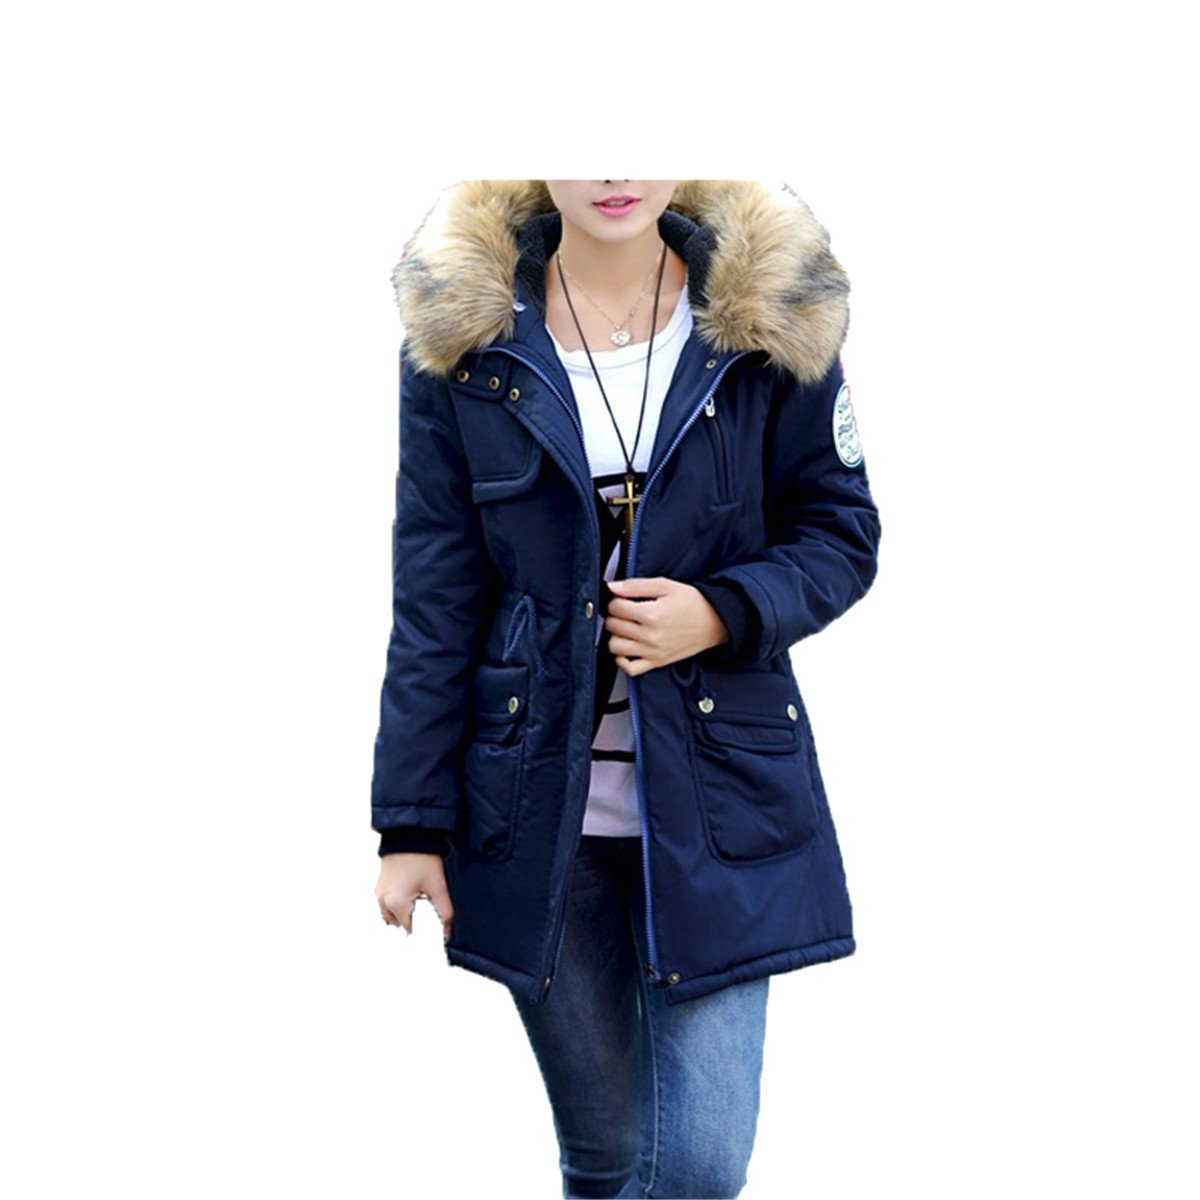 Amazon.com: LR New New Women Winter Coat Wadded Jacket Medium-Long Plus Size 4XL Parka Fur Collar Thickening Hood Abrigos Female Snow Wear Navy Blue XXXL: ...